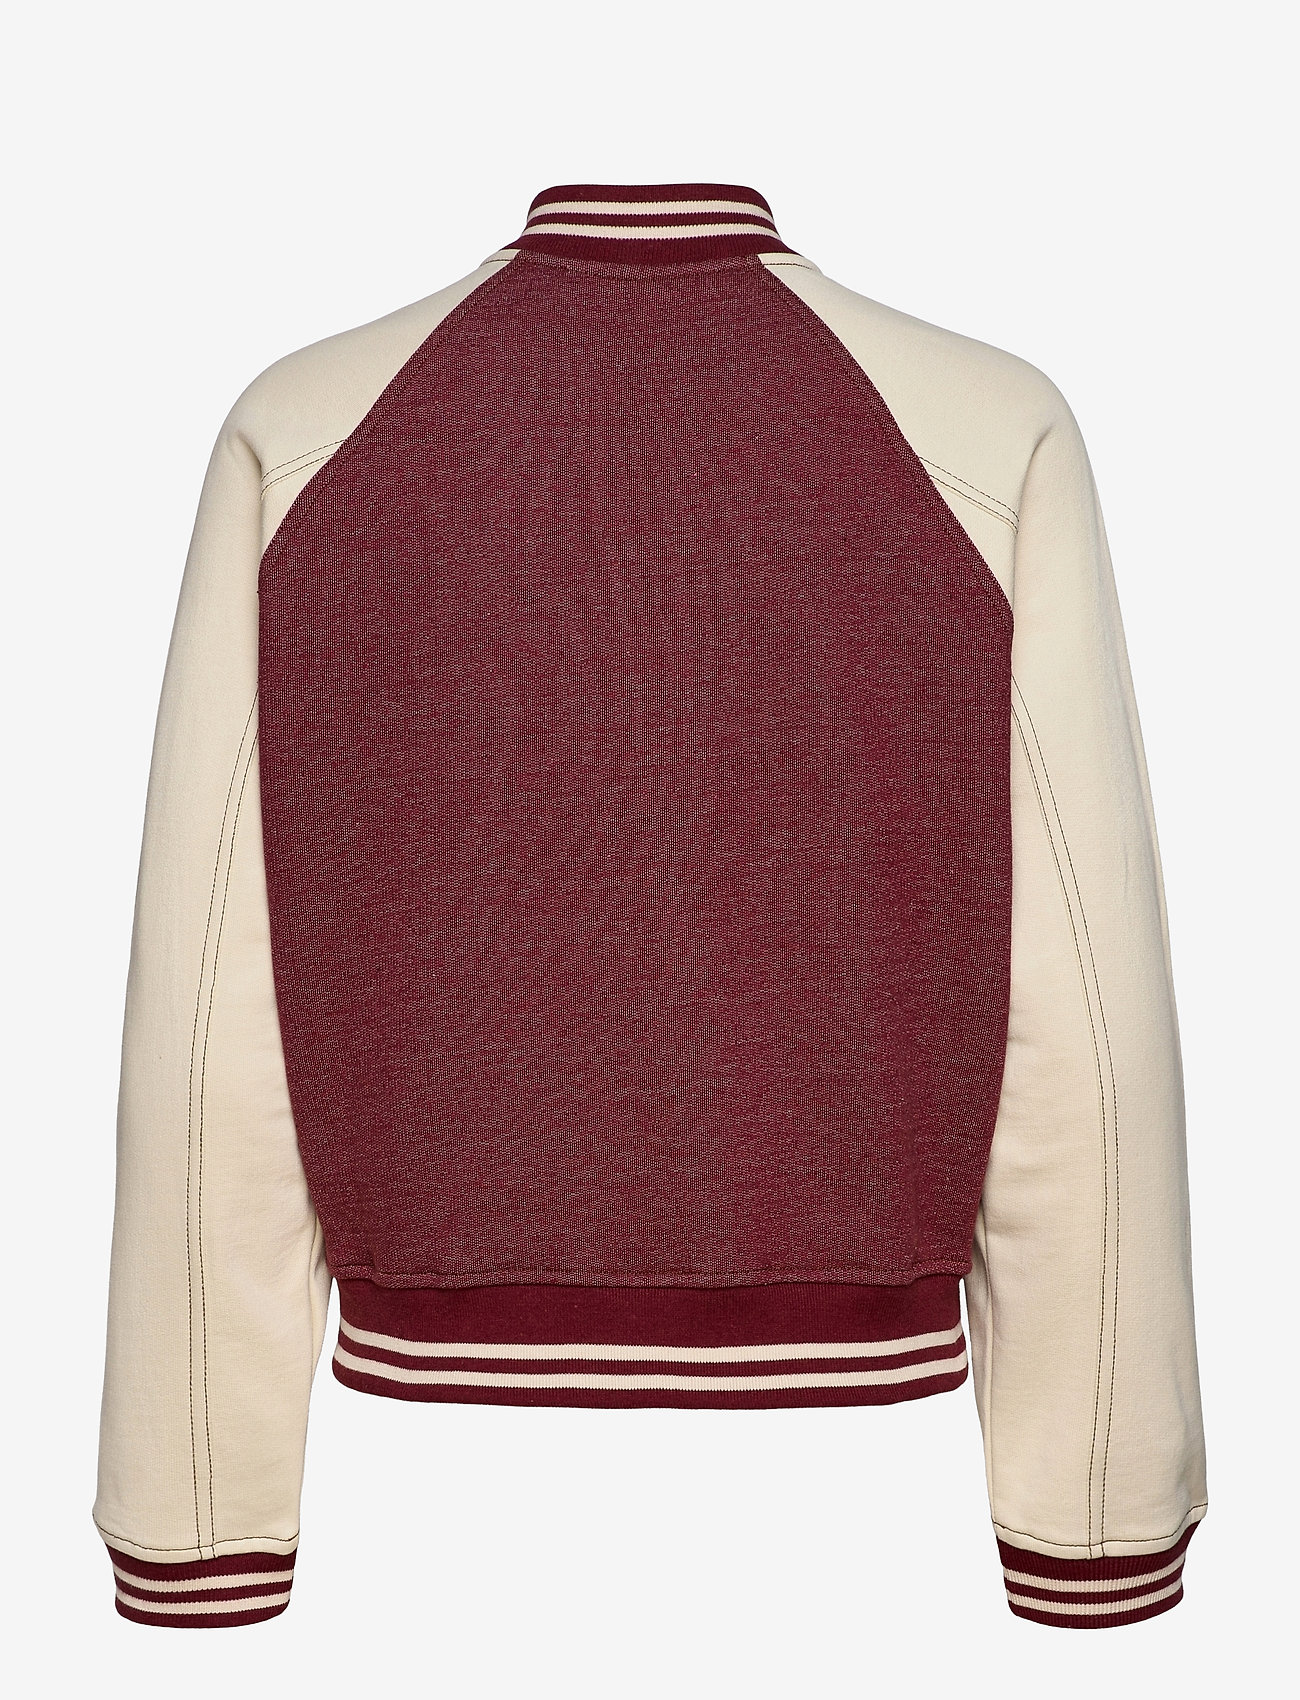 See by Chloé - JACKET - bomber jacks - red - white 1 - 1